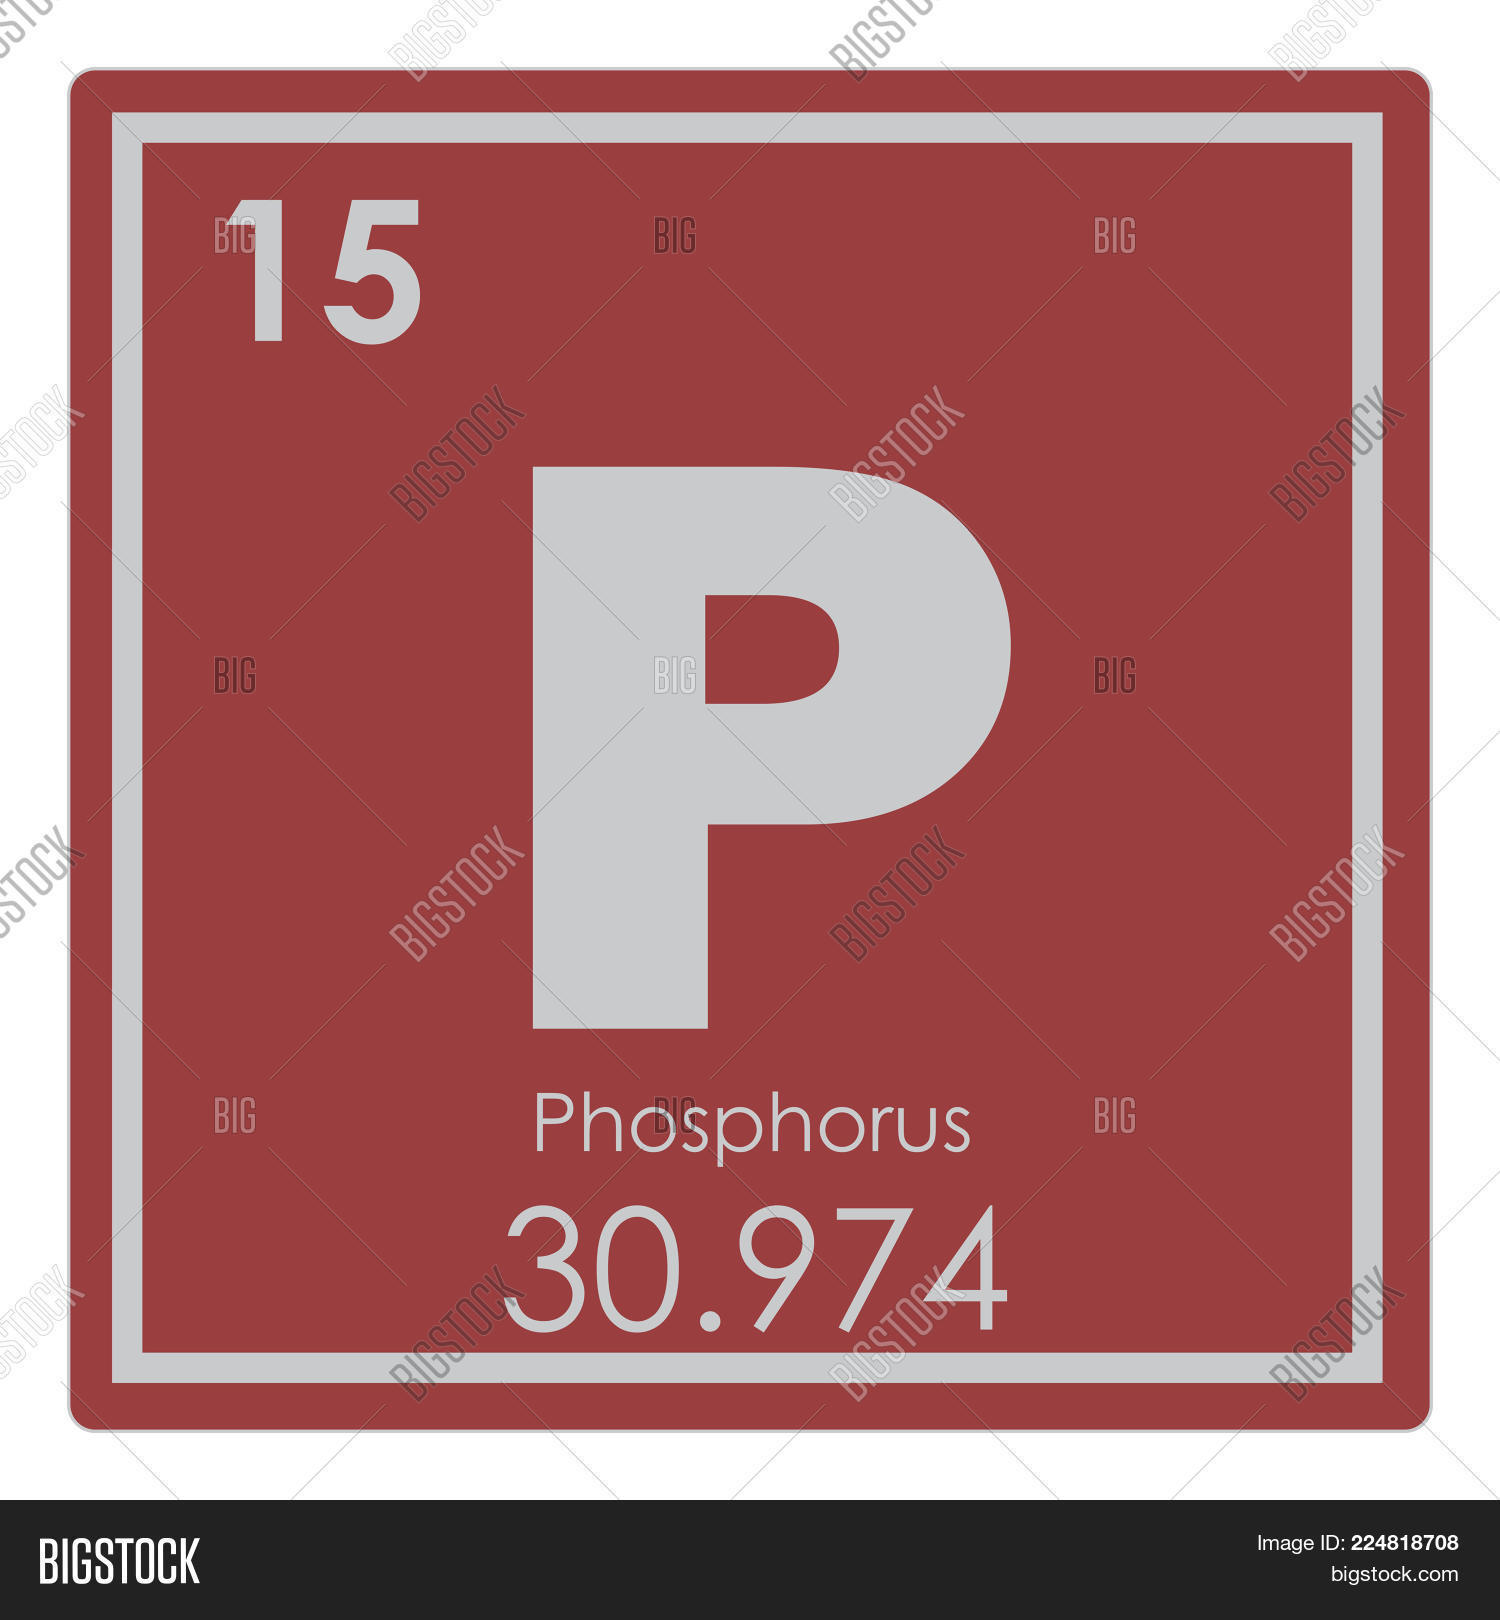 Phosphorus chemical element image photo bigstock phosphorus chemical element periodic table science symbol urtaz Image collections